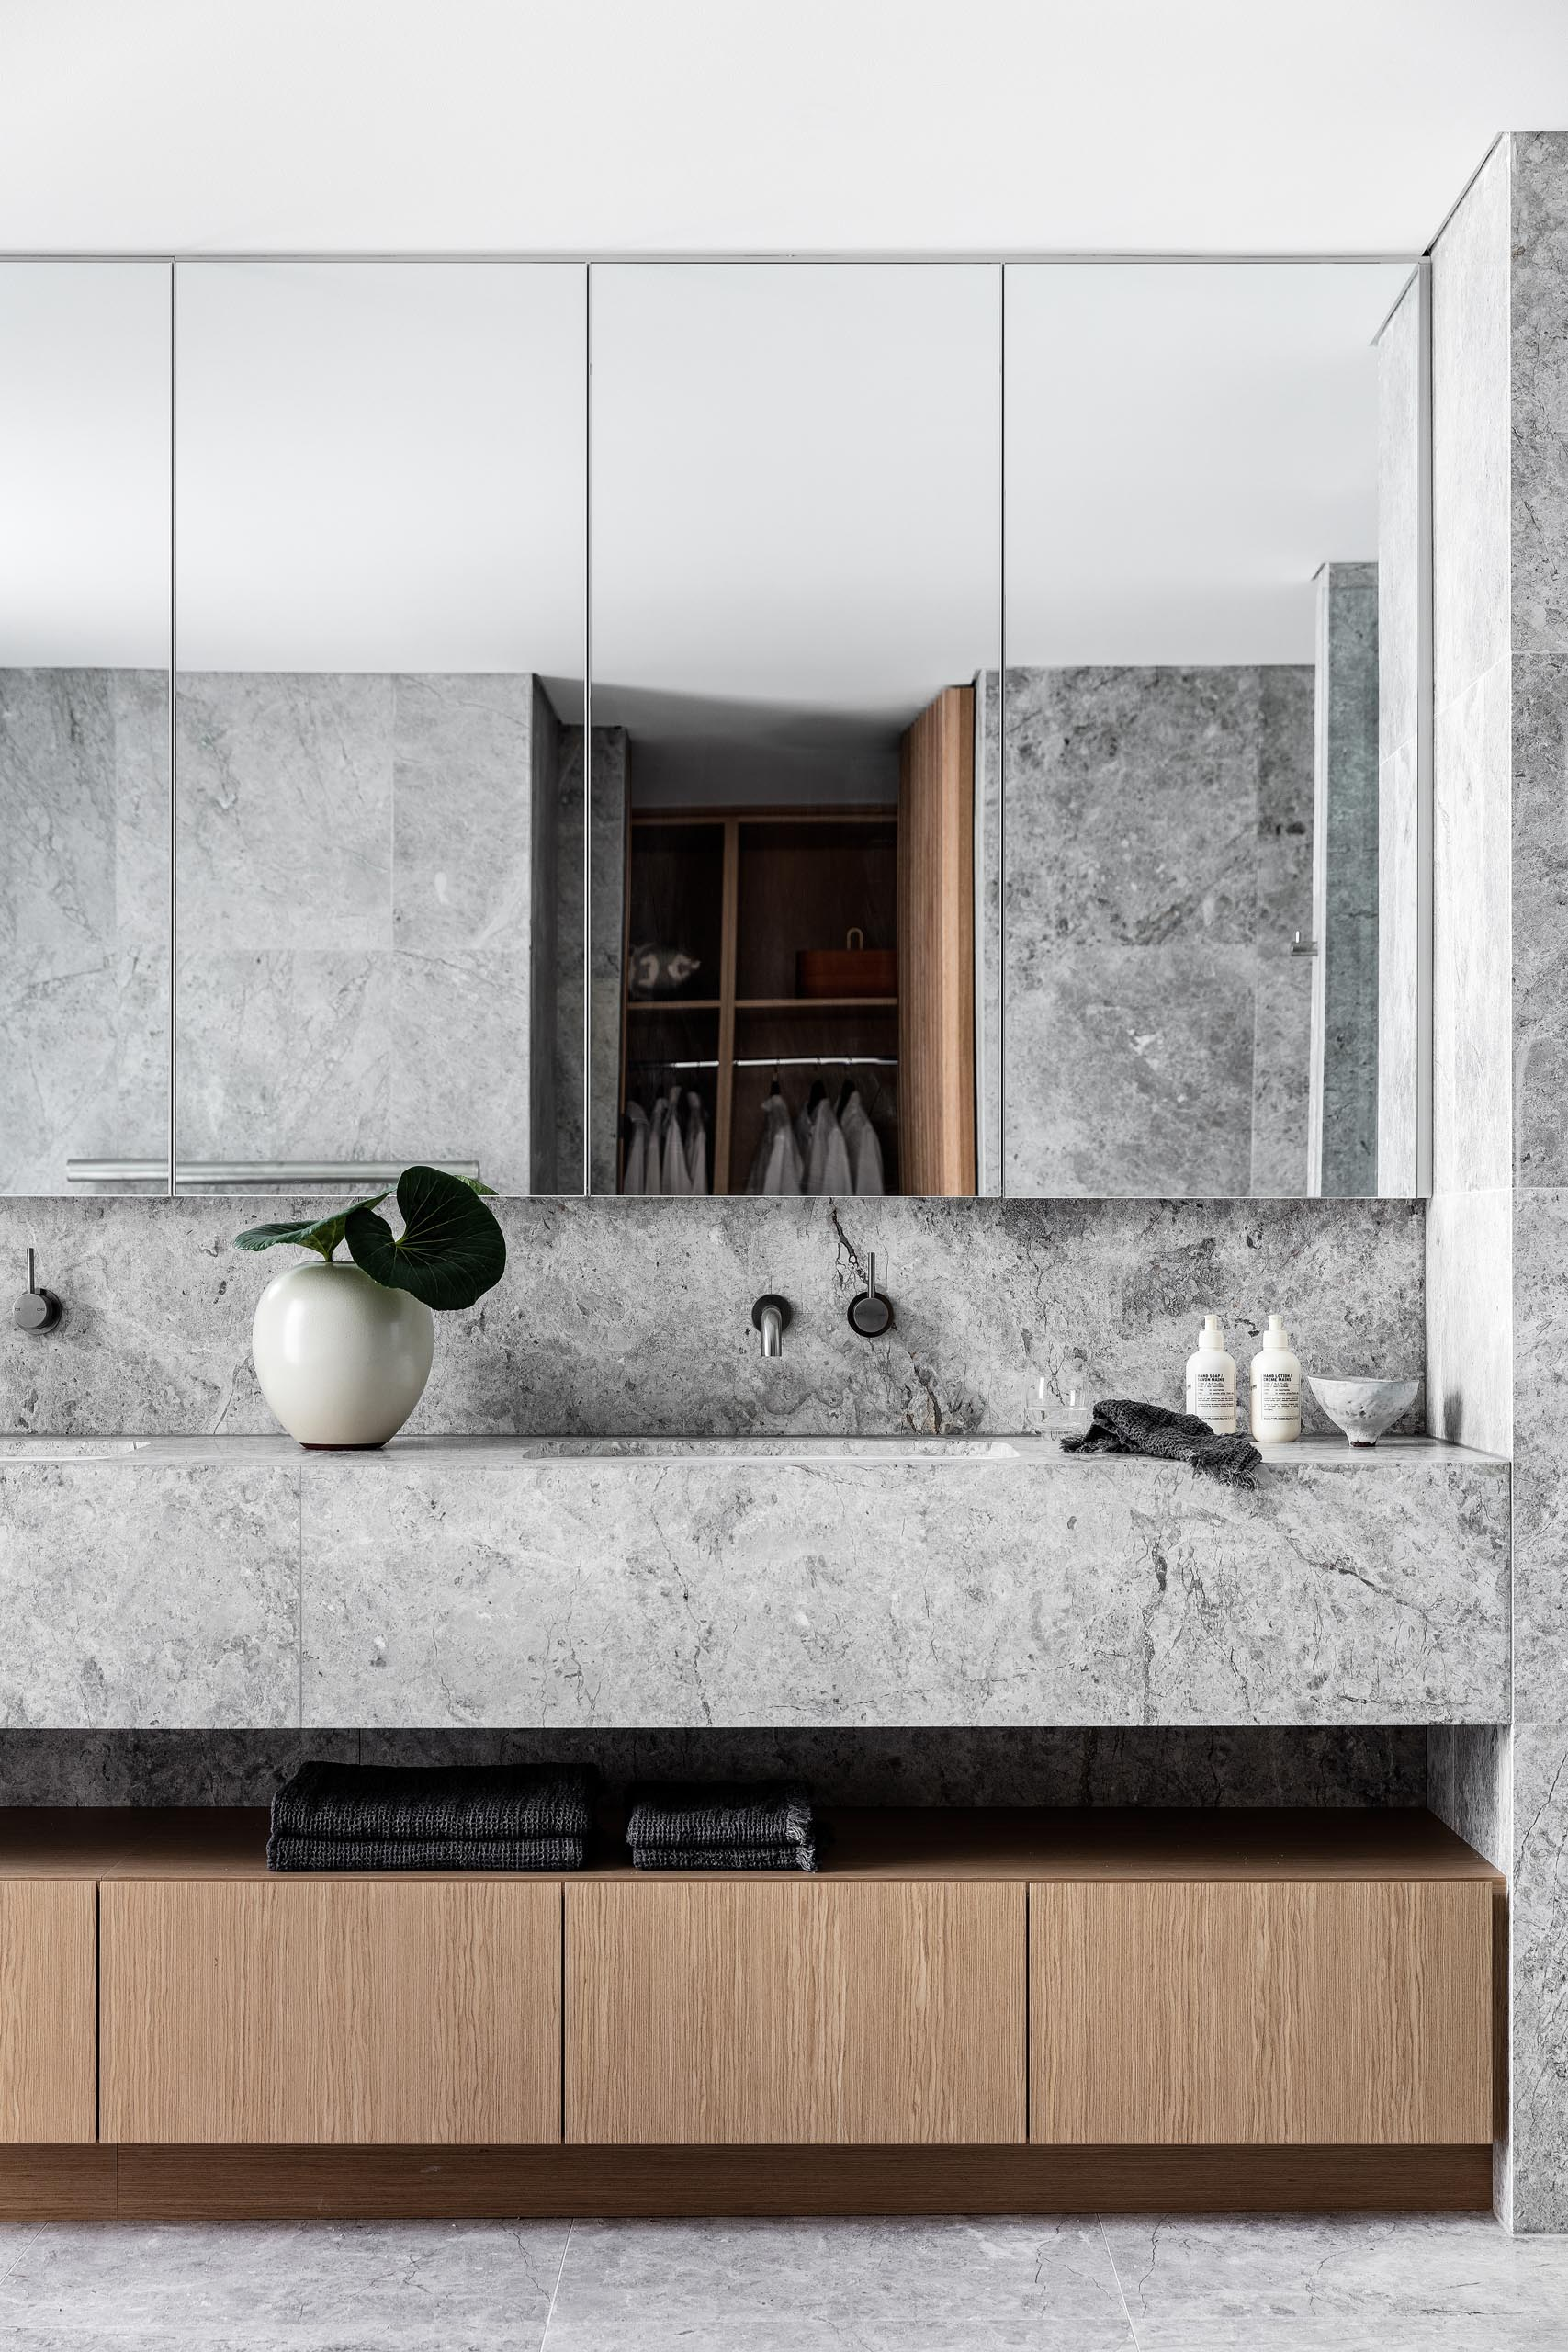 In this modern master bathroom, natural stone with a grey finish covers the walls and floors, as well as the vanity.